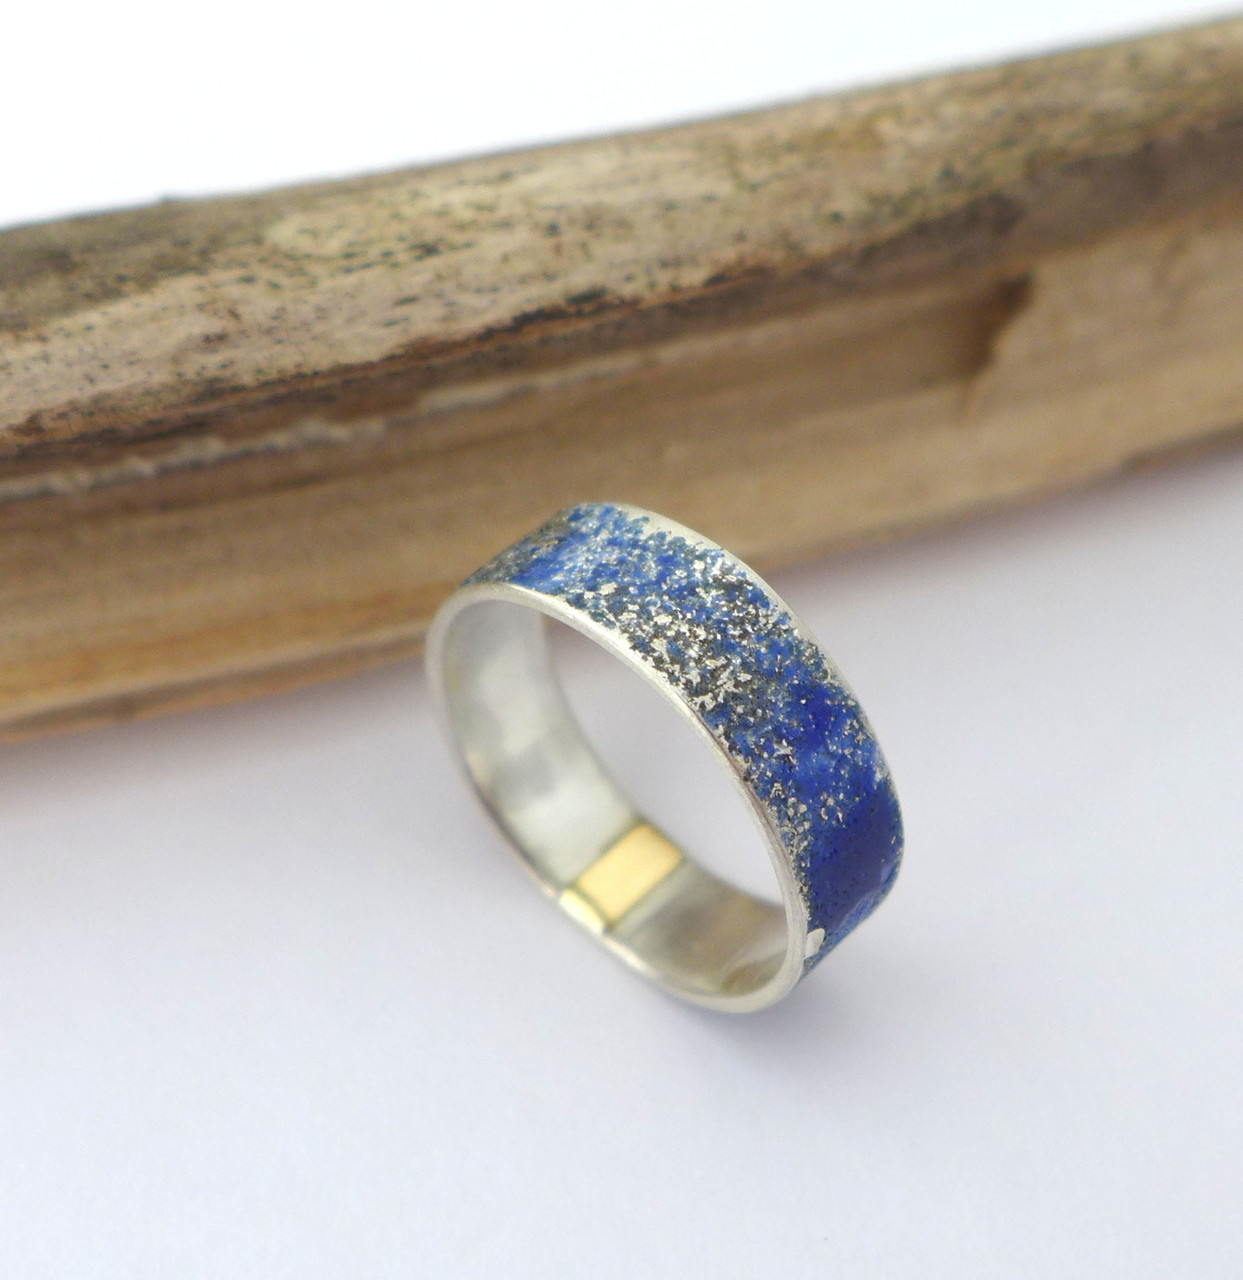 Ring, sterling silver with blue enamel, 14k yellow gold